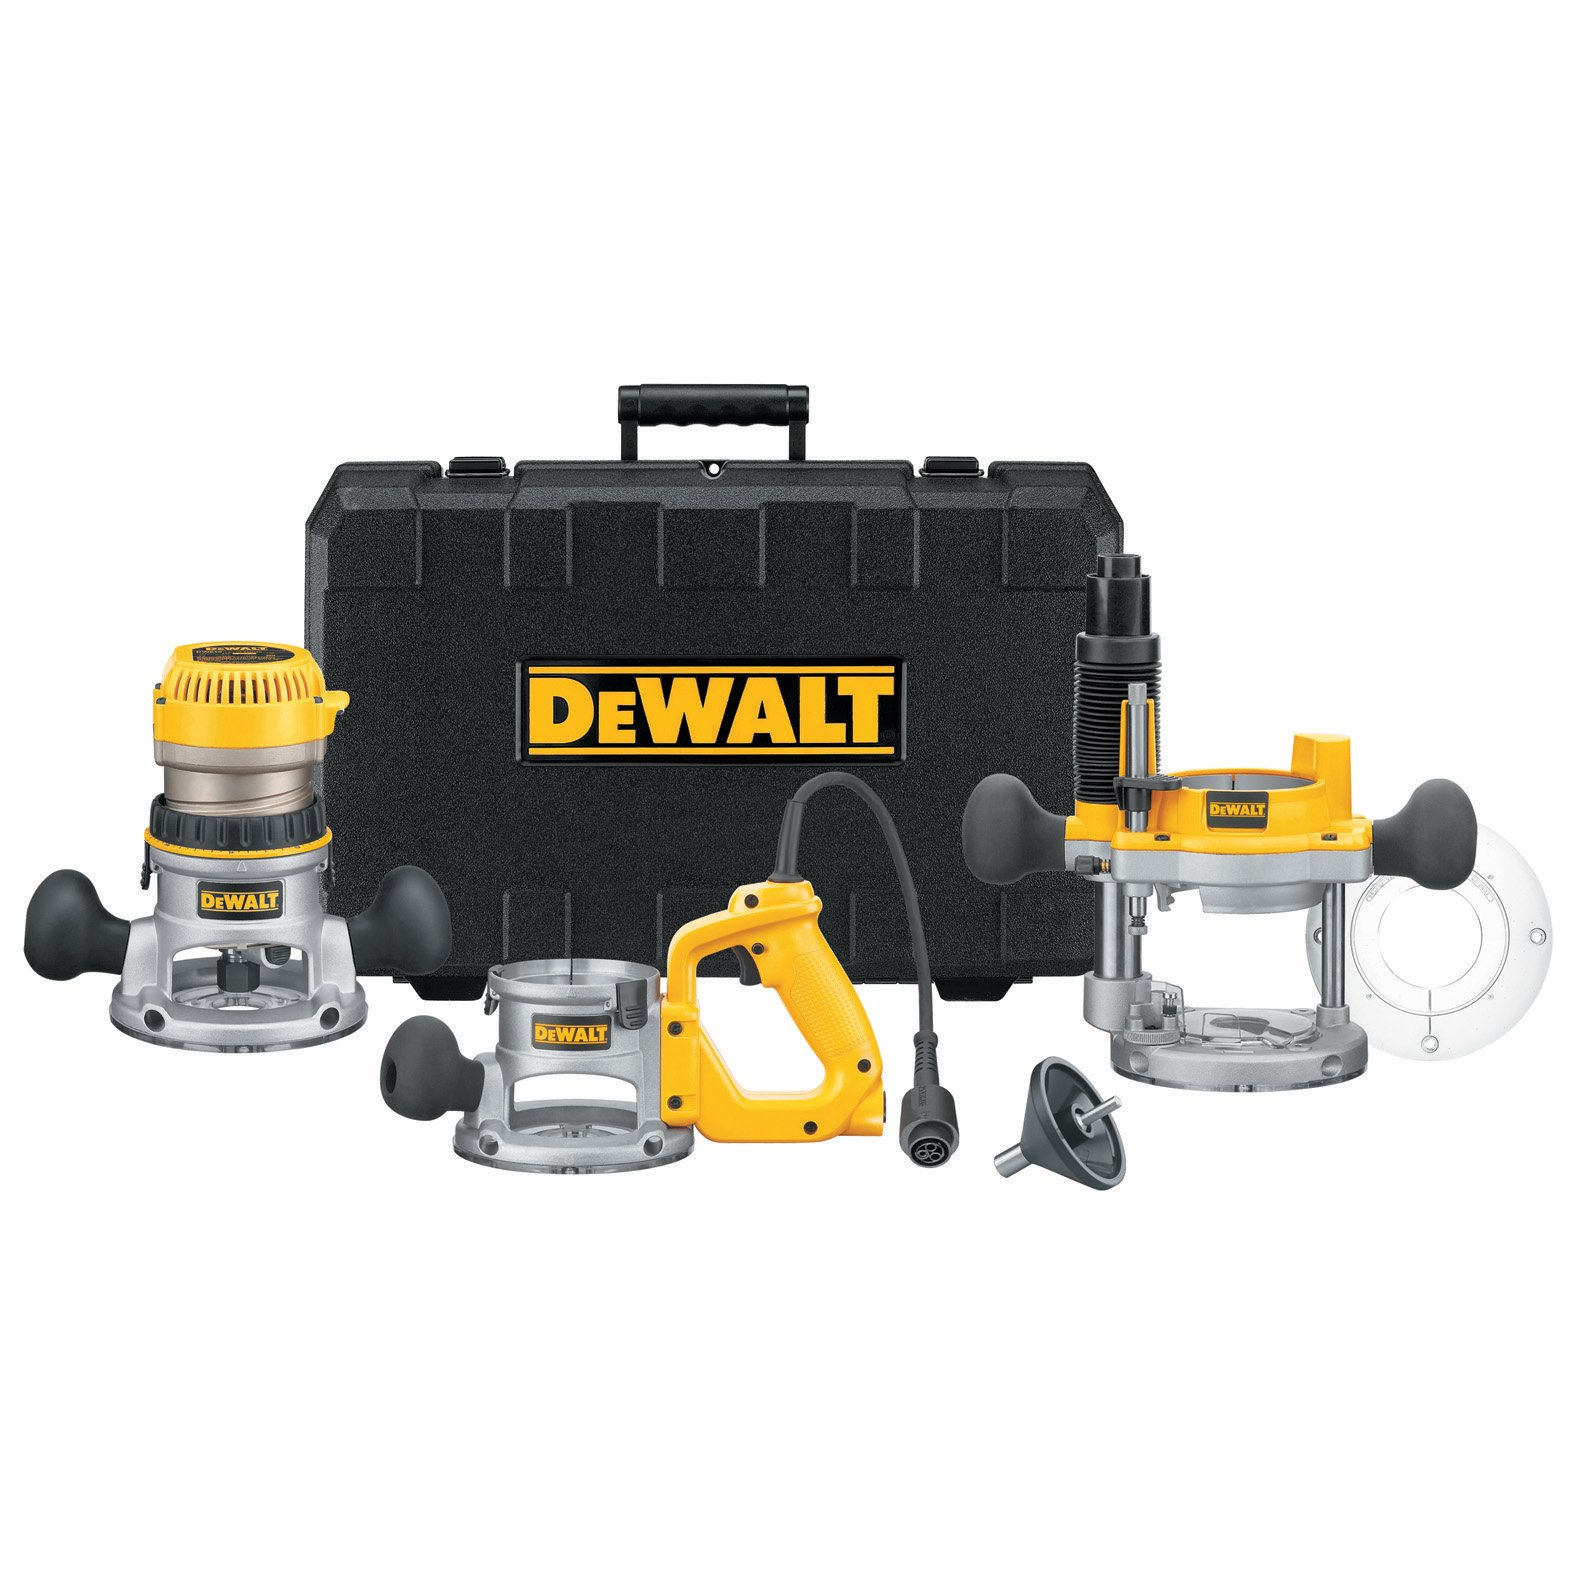 Dewalt dw618pk router kit best wood router best router table dewalt dw618pk 12 amp 2 14 hp plunge and fixed base greentooth